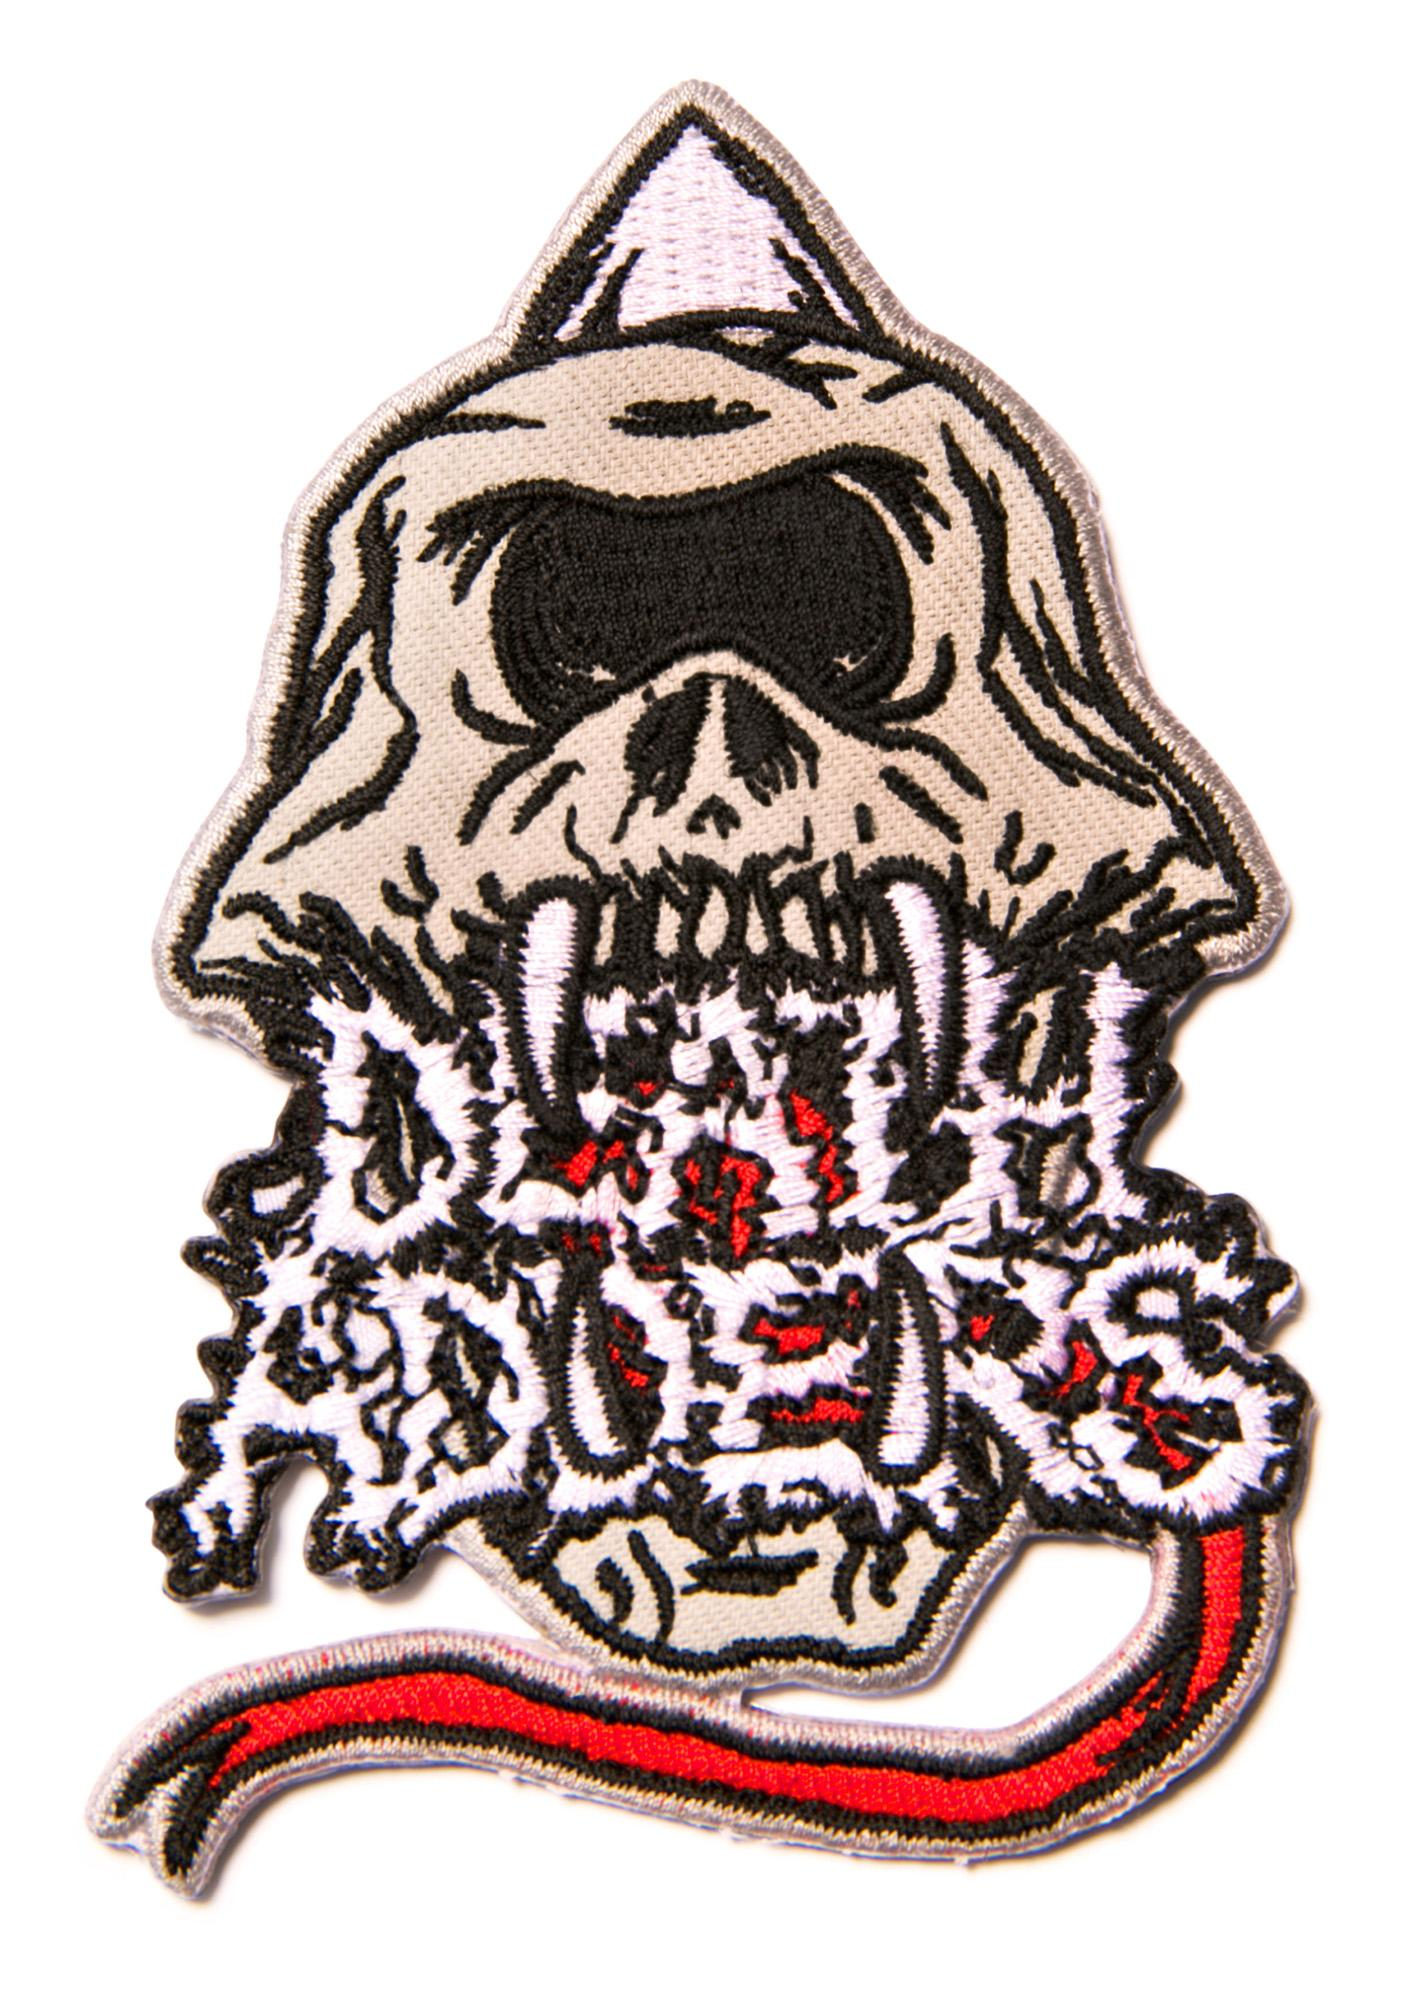 Mishka Cyco Serpent Patch